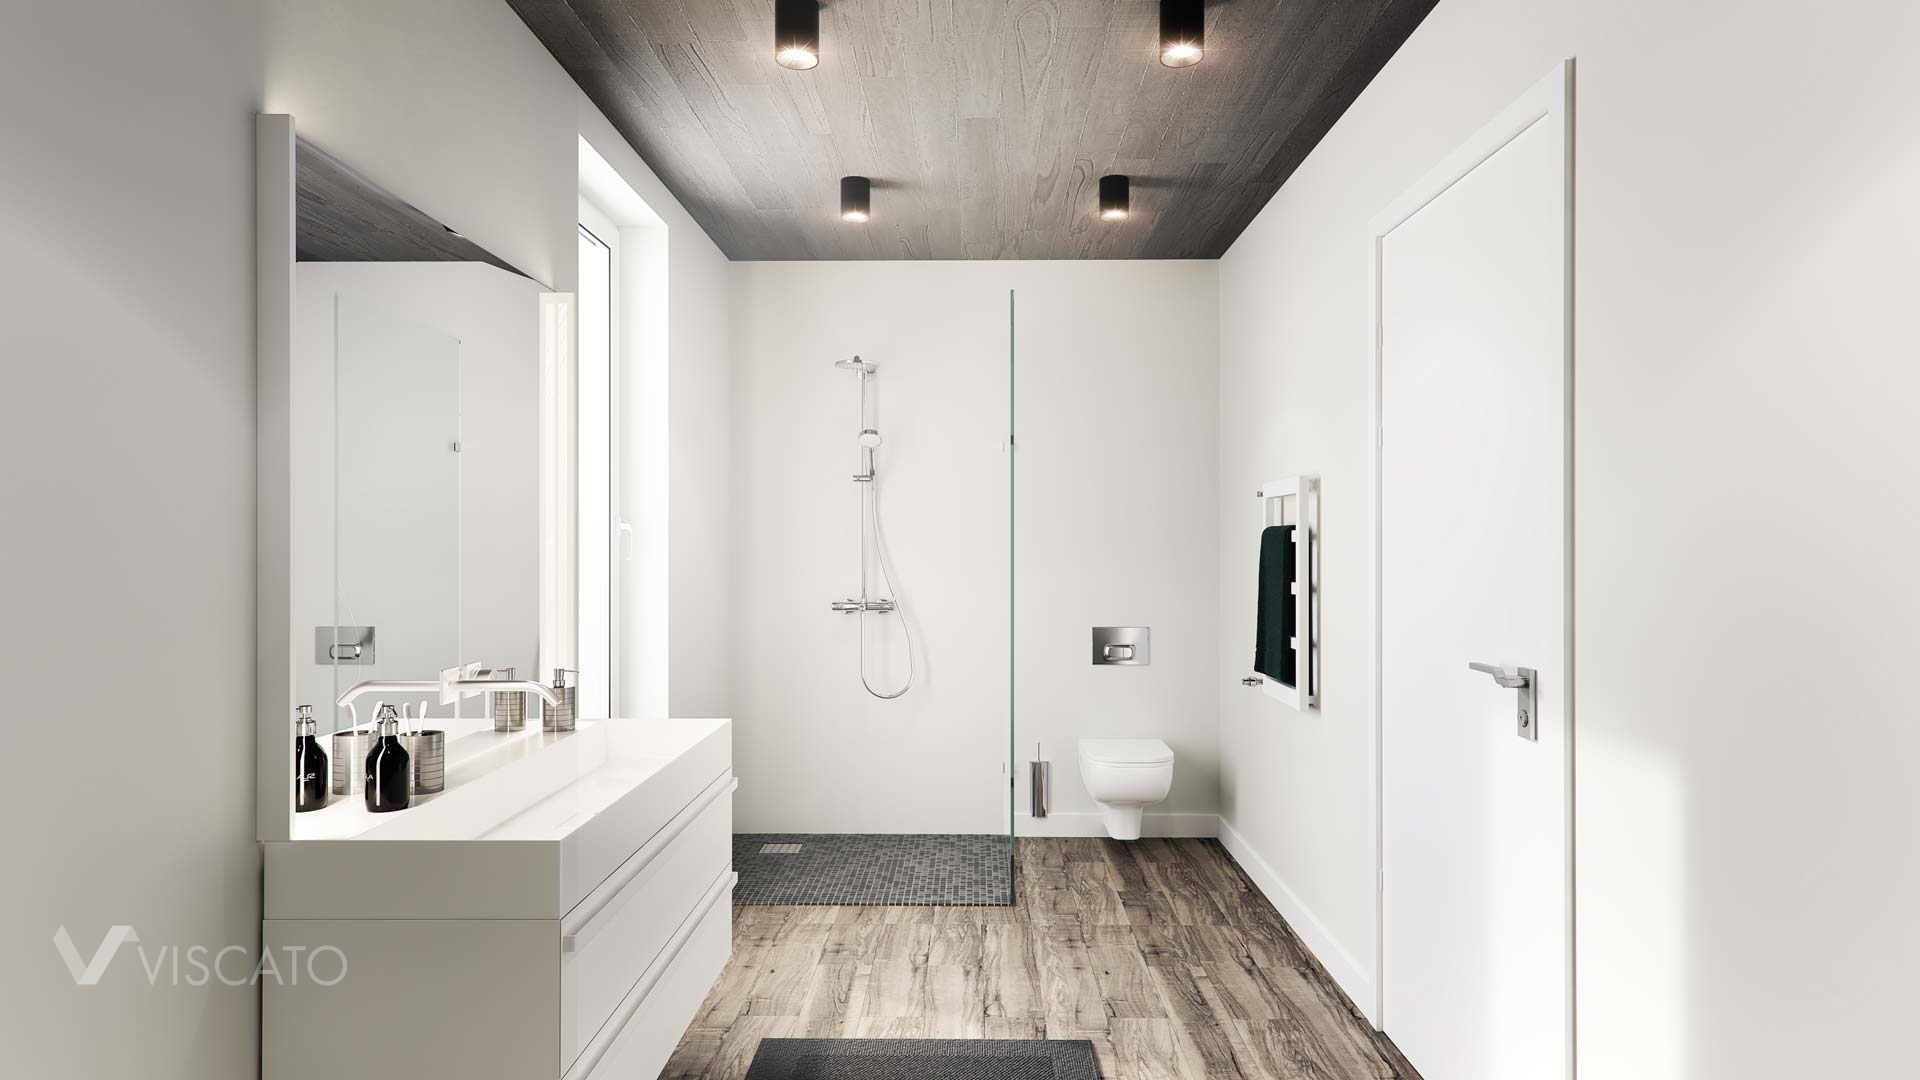 bathroom with a wooden ceiling, Viscato